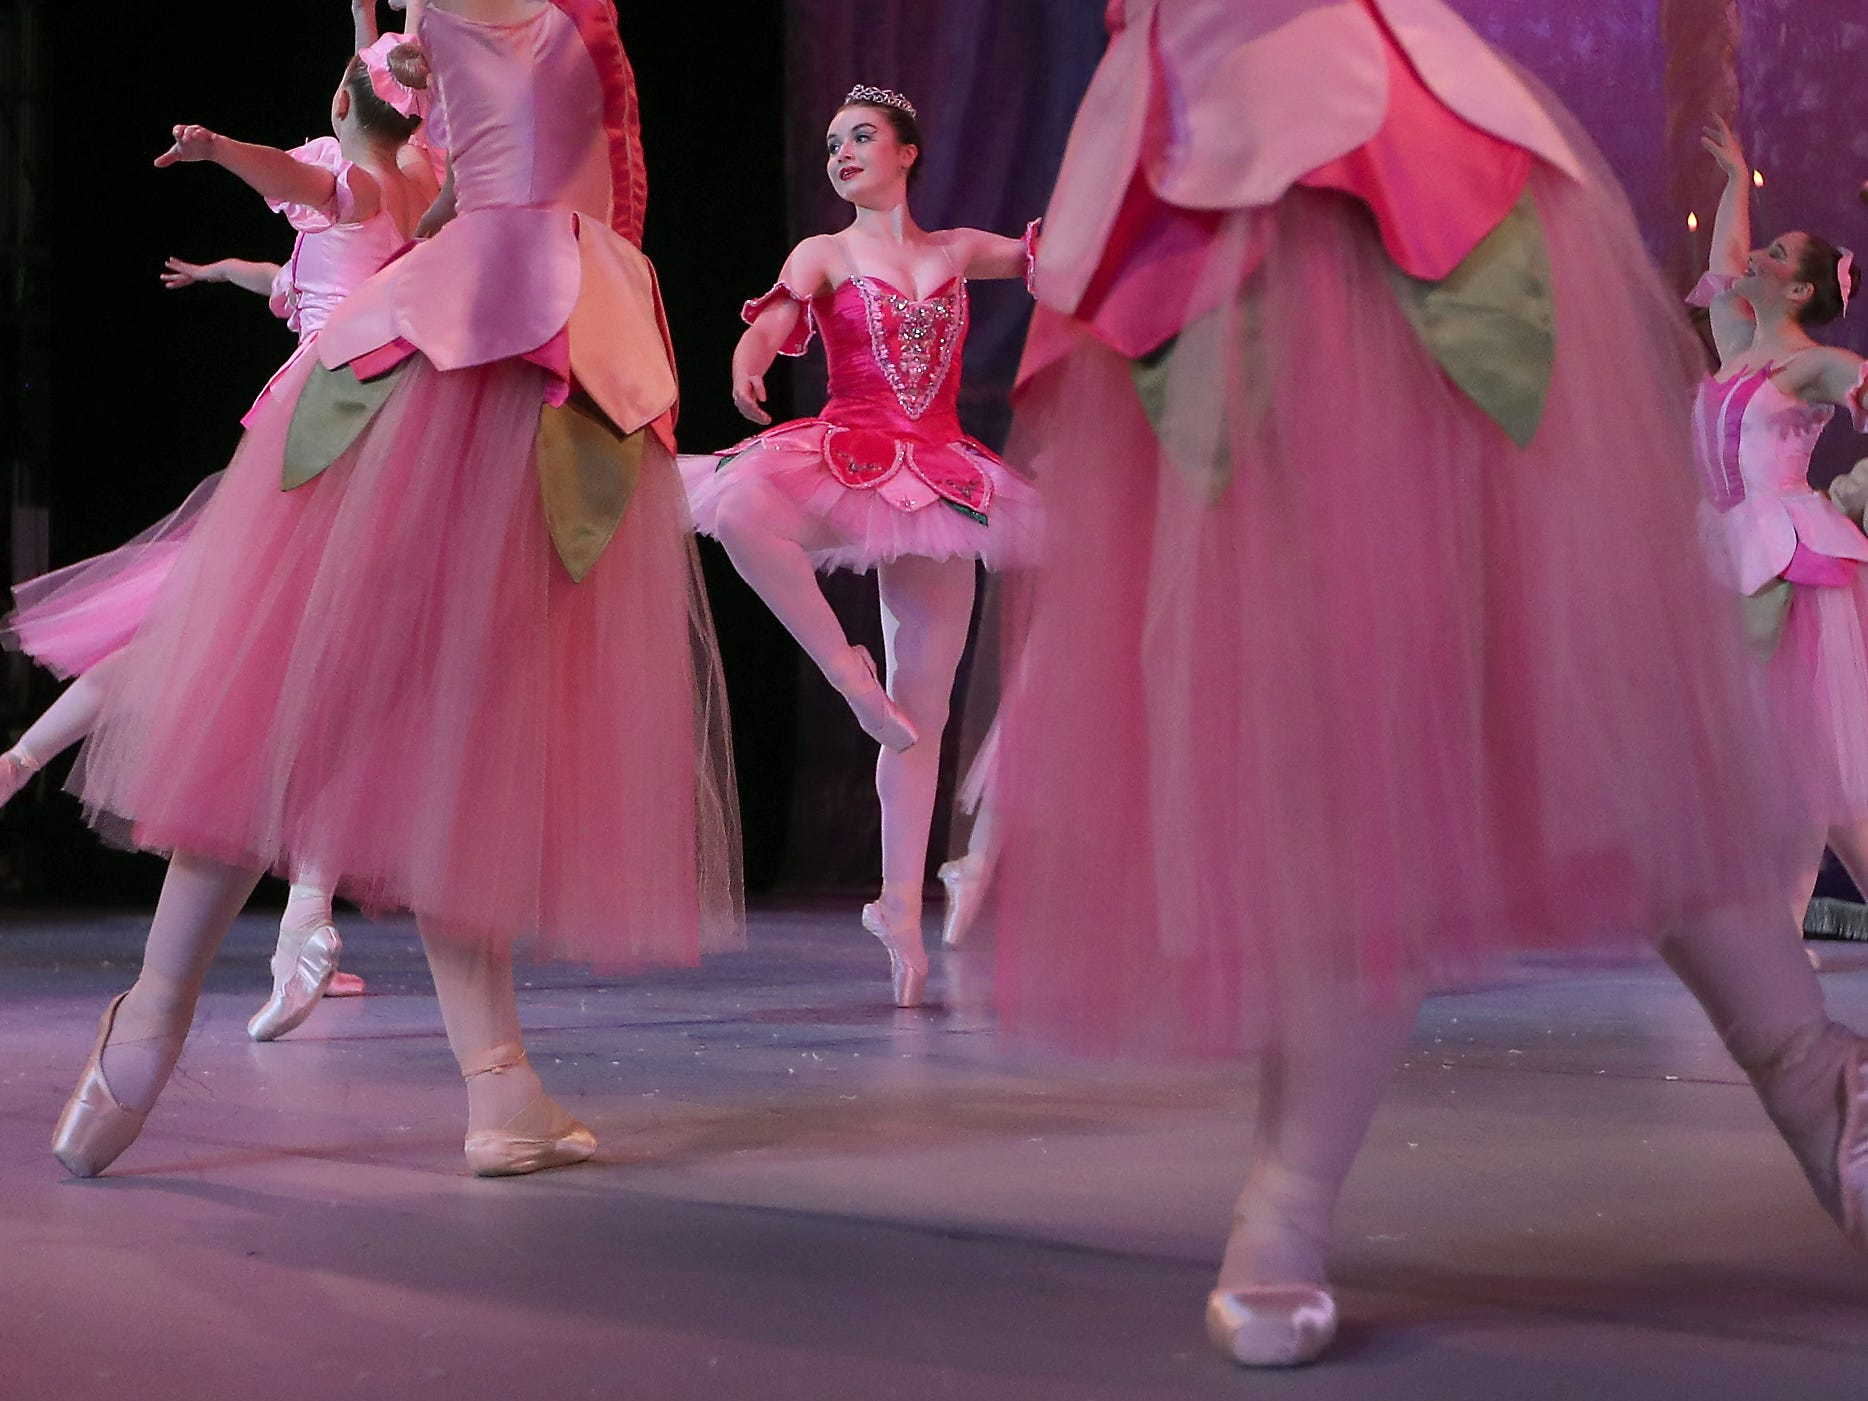 Elise Schroeder (center) dances the part of Rose during rehearsal for Peninsula Dance Theatre's annual Nutcracker production at the Bremerton Performing Arts Center on Wednesday, November 28, 2018.